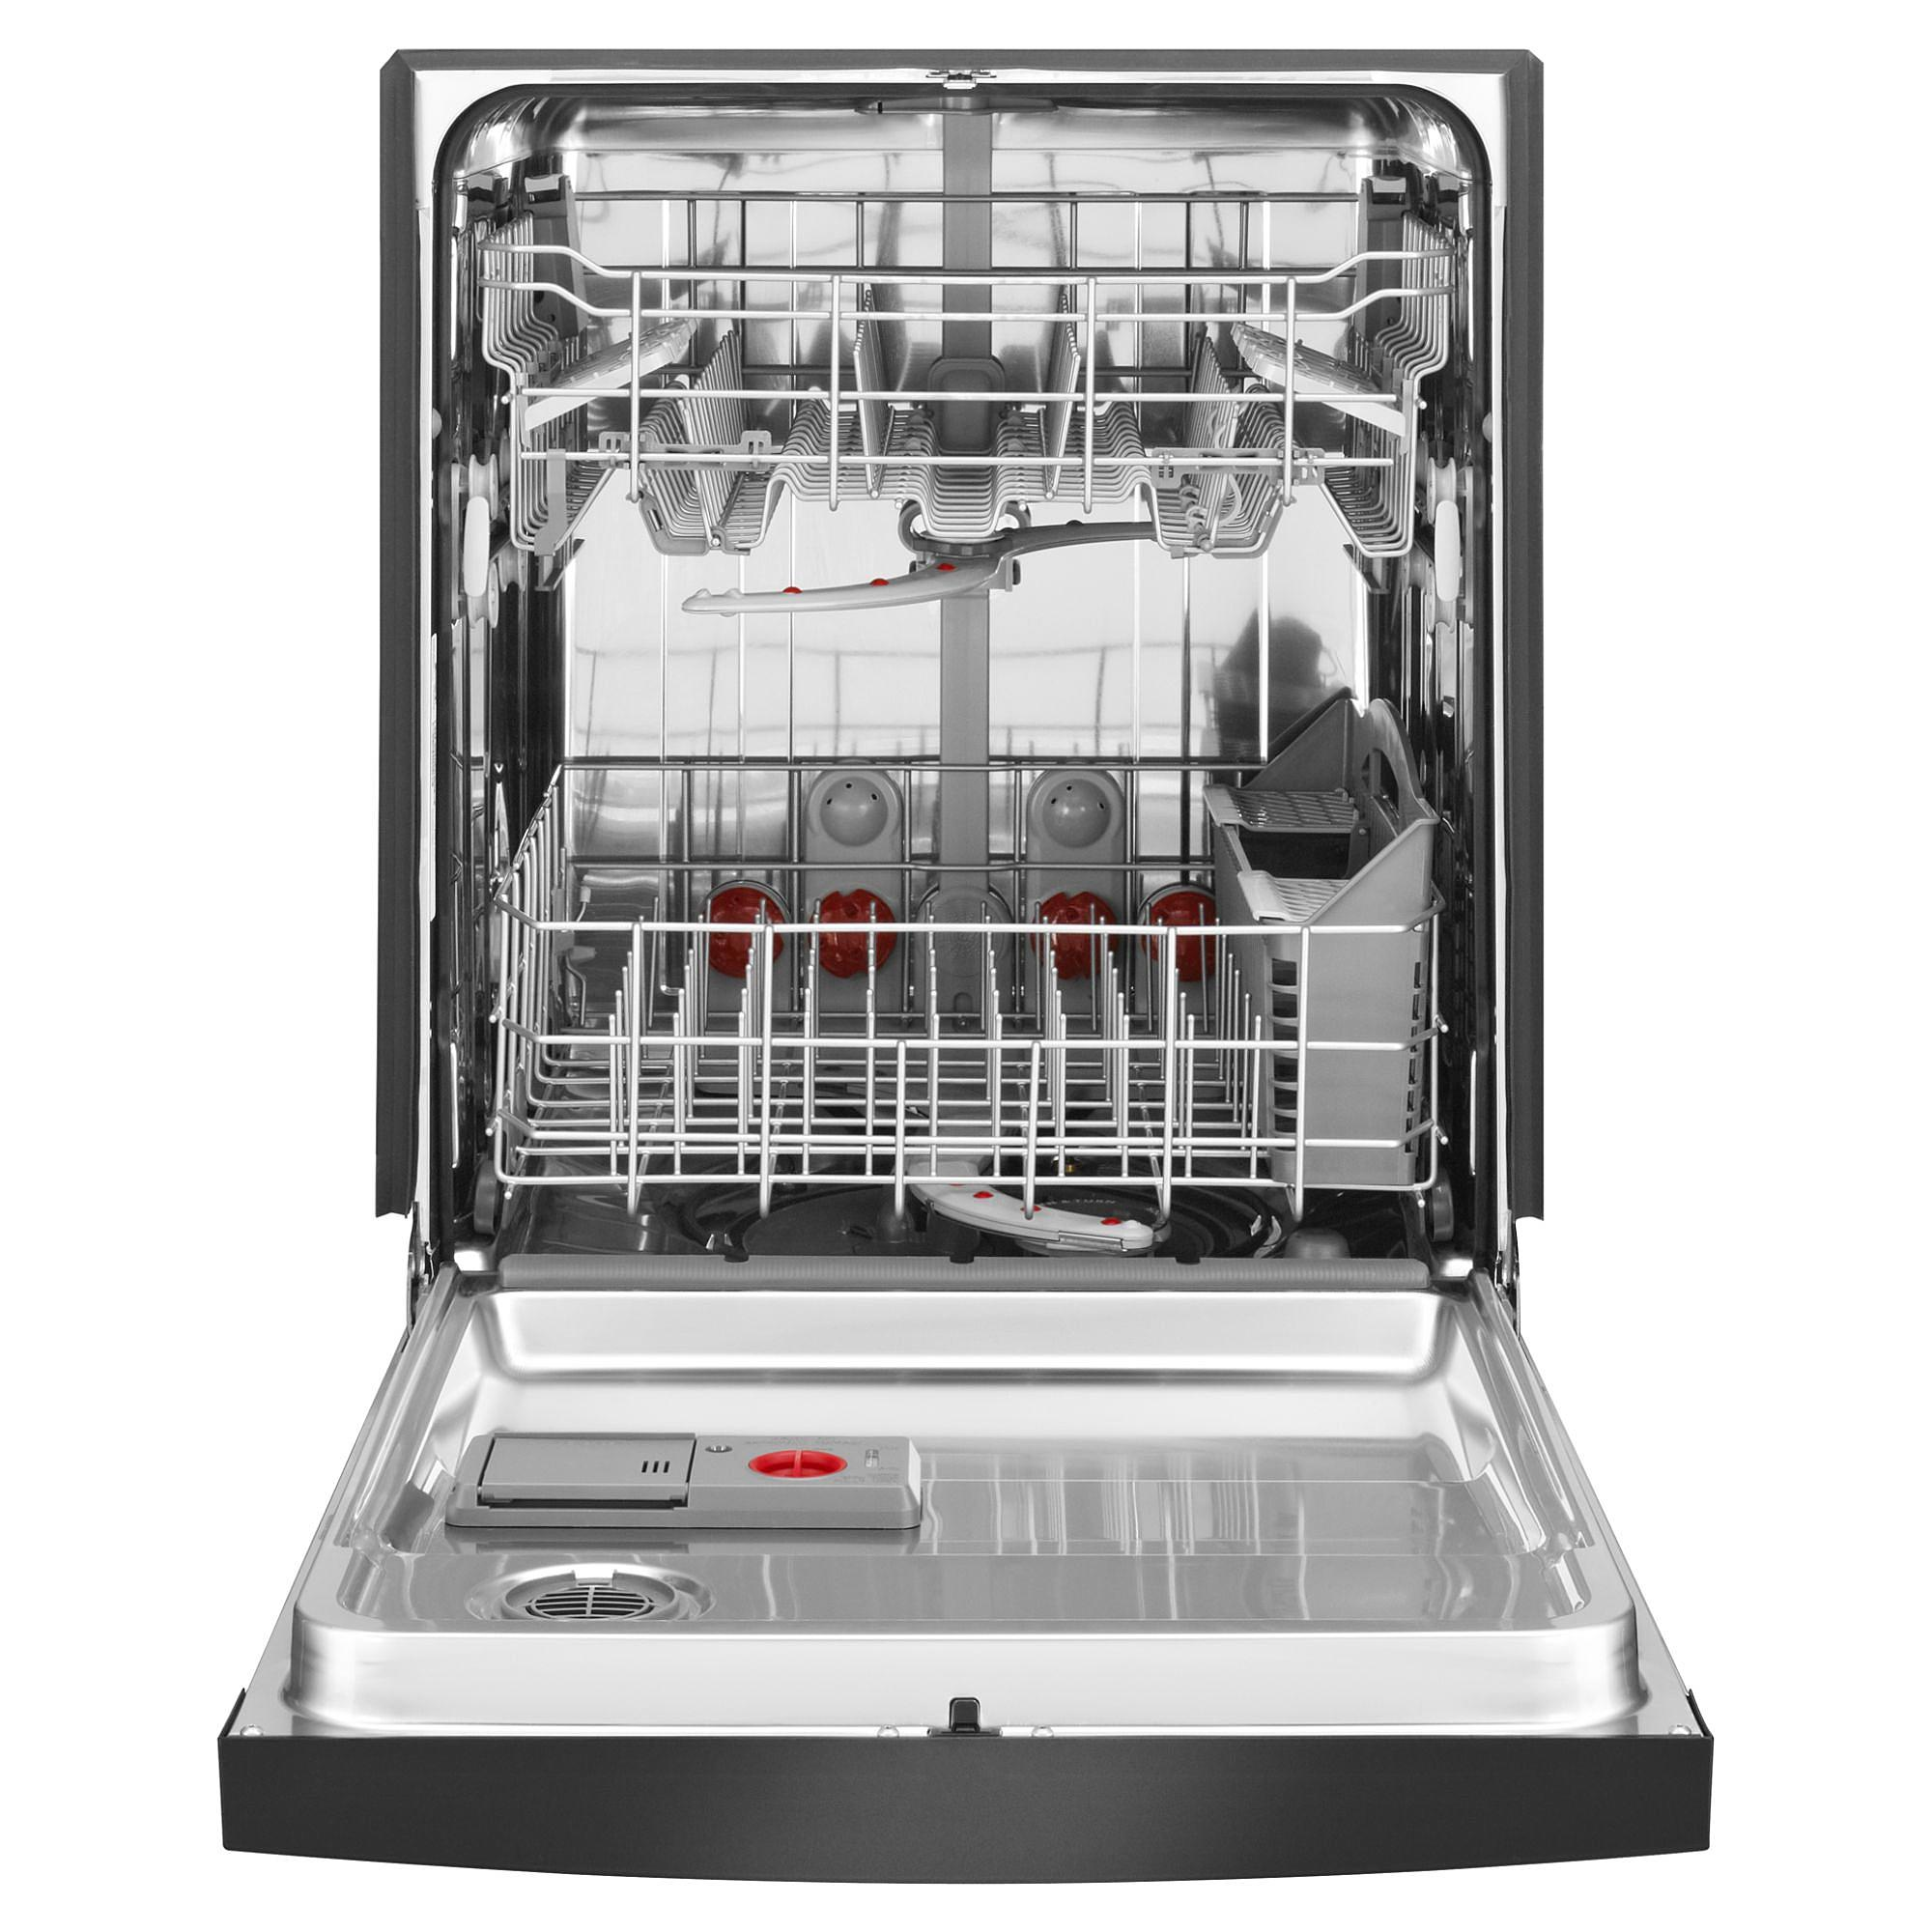 How to replace a dishwasher control panel | Repair guide